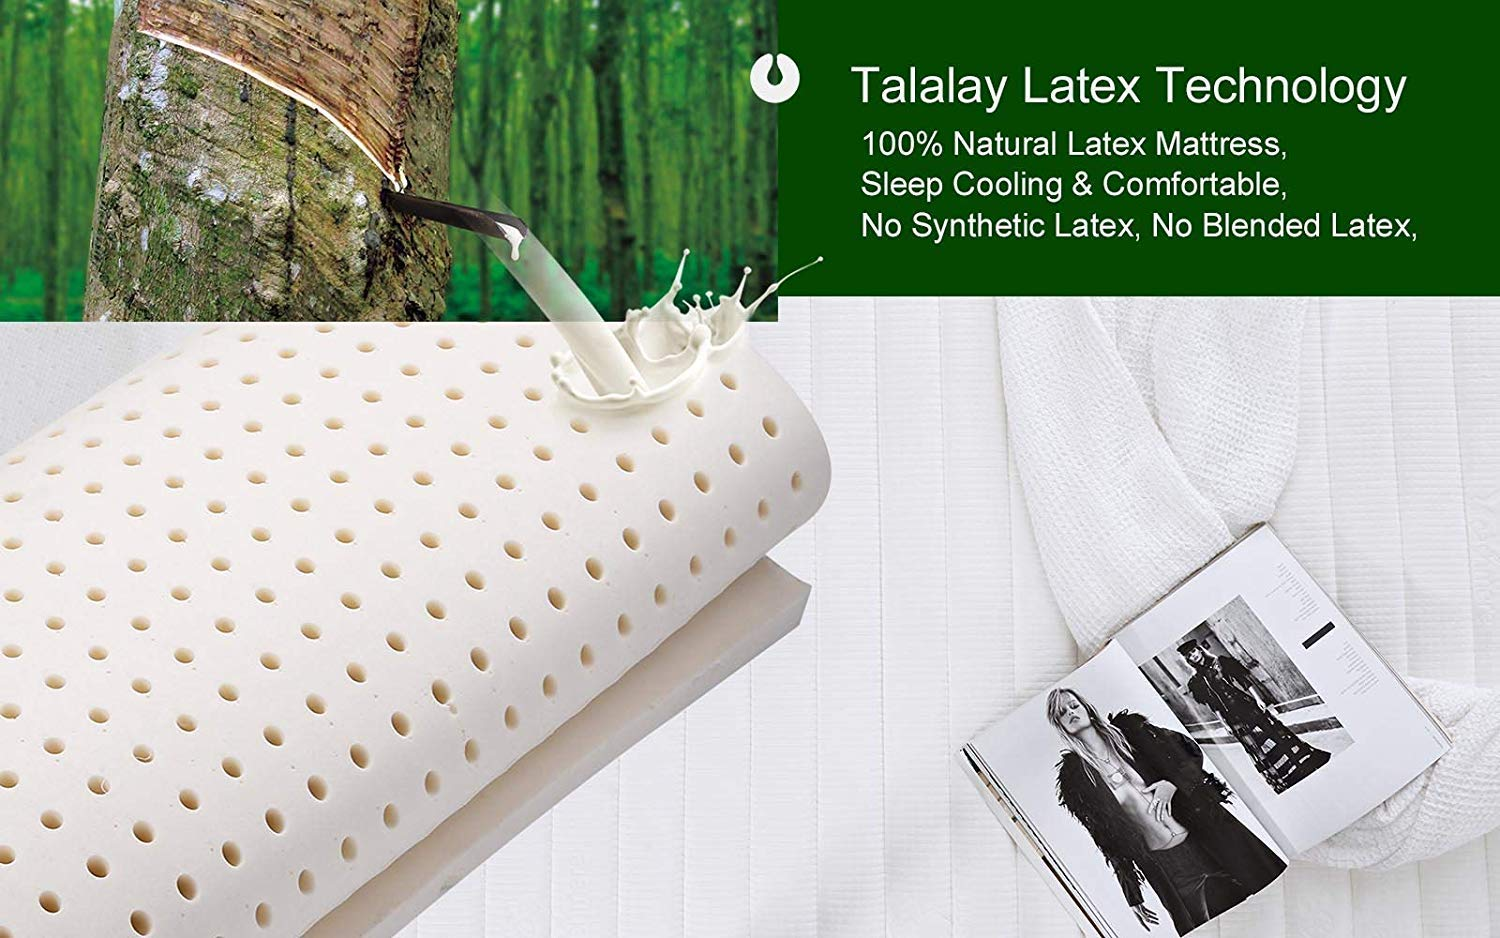 Sunrising Bedding Mattress Review - Tataley Latex Technology Layer